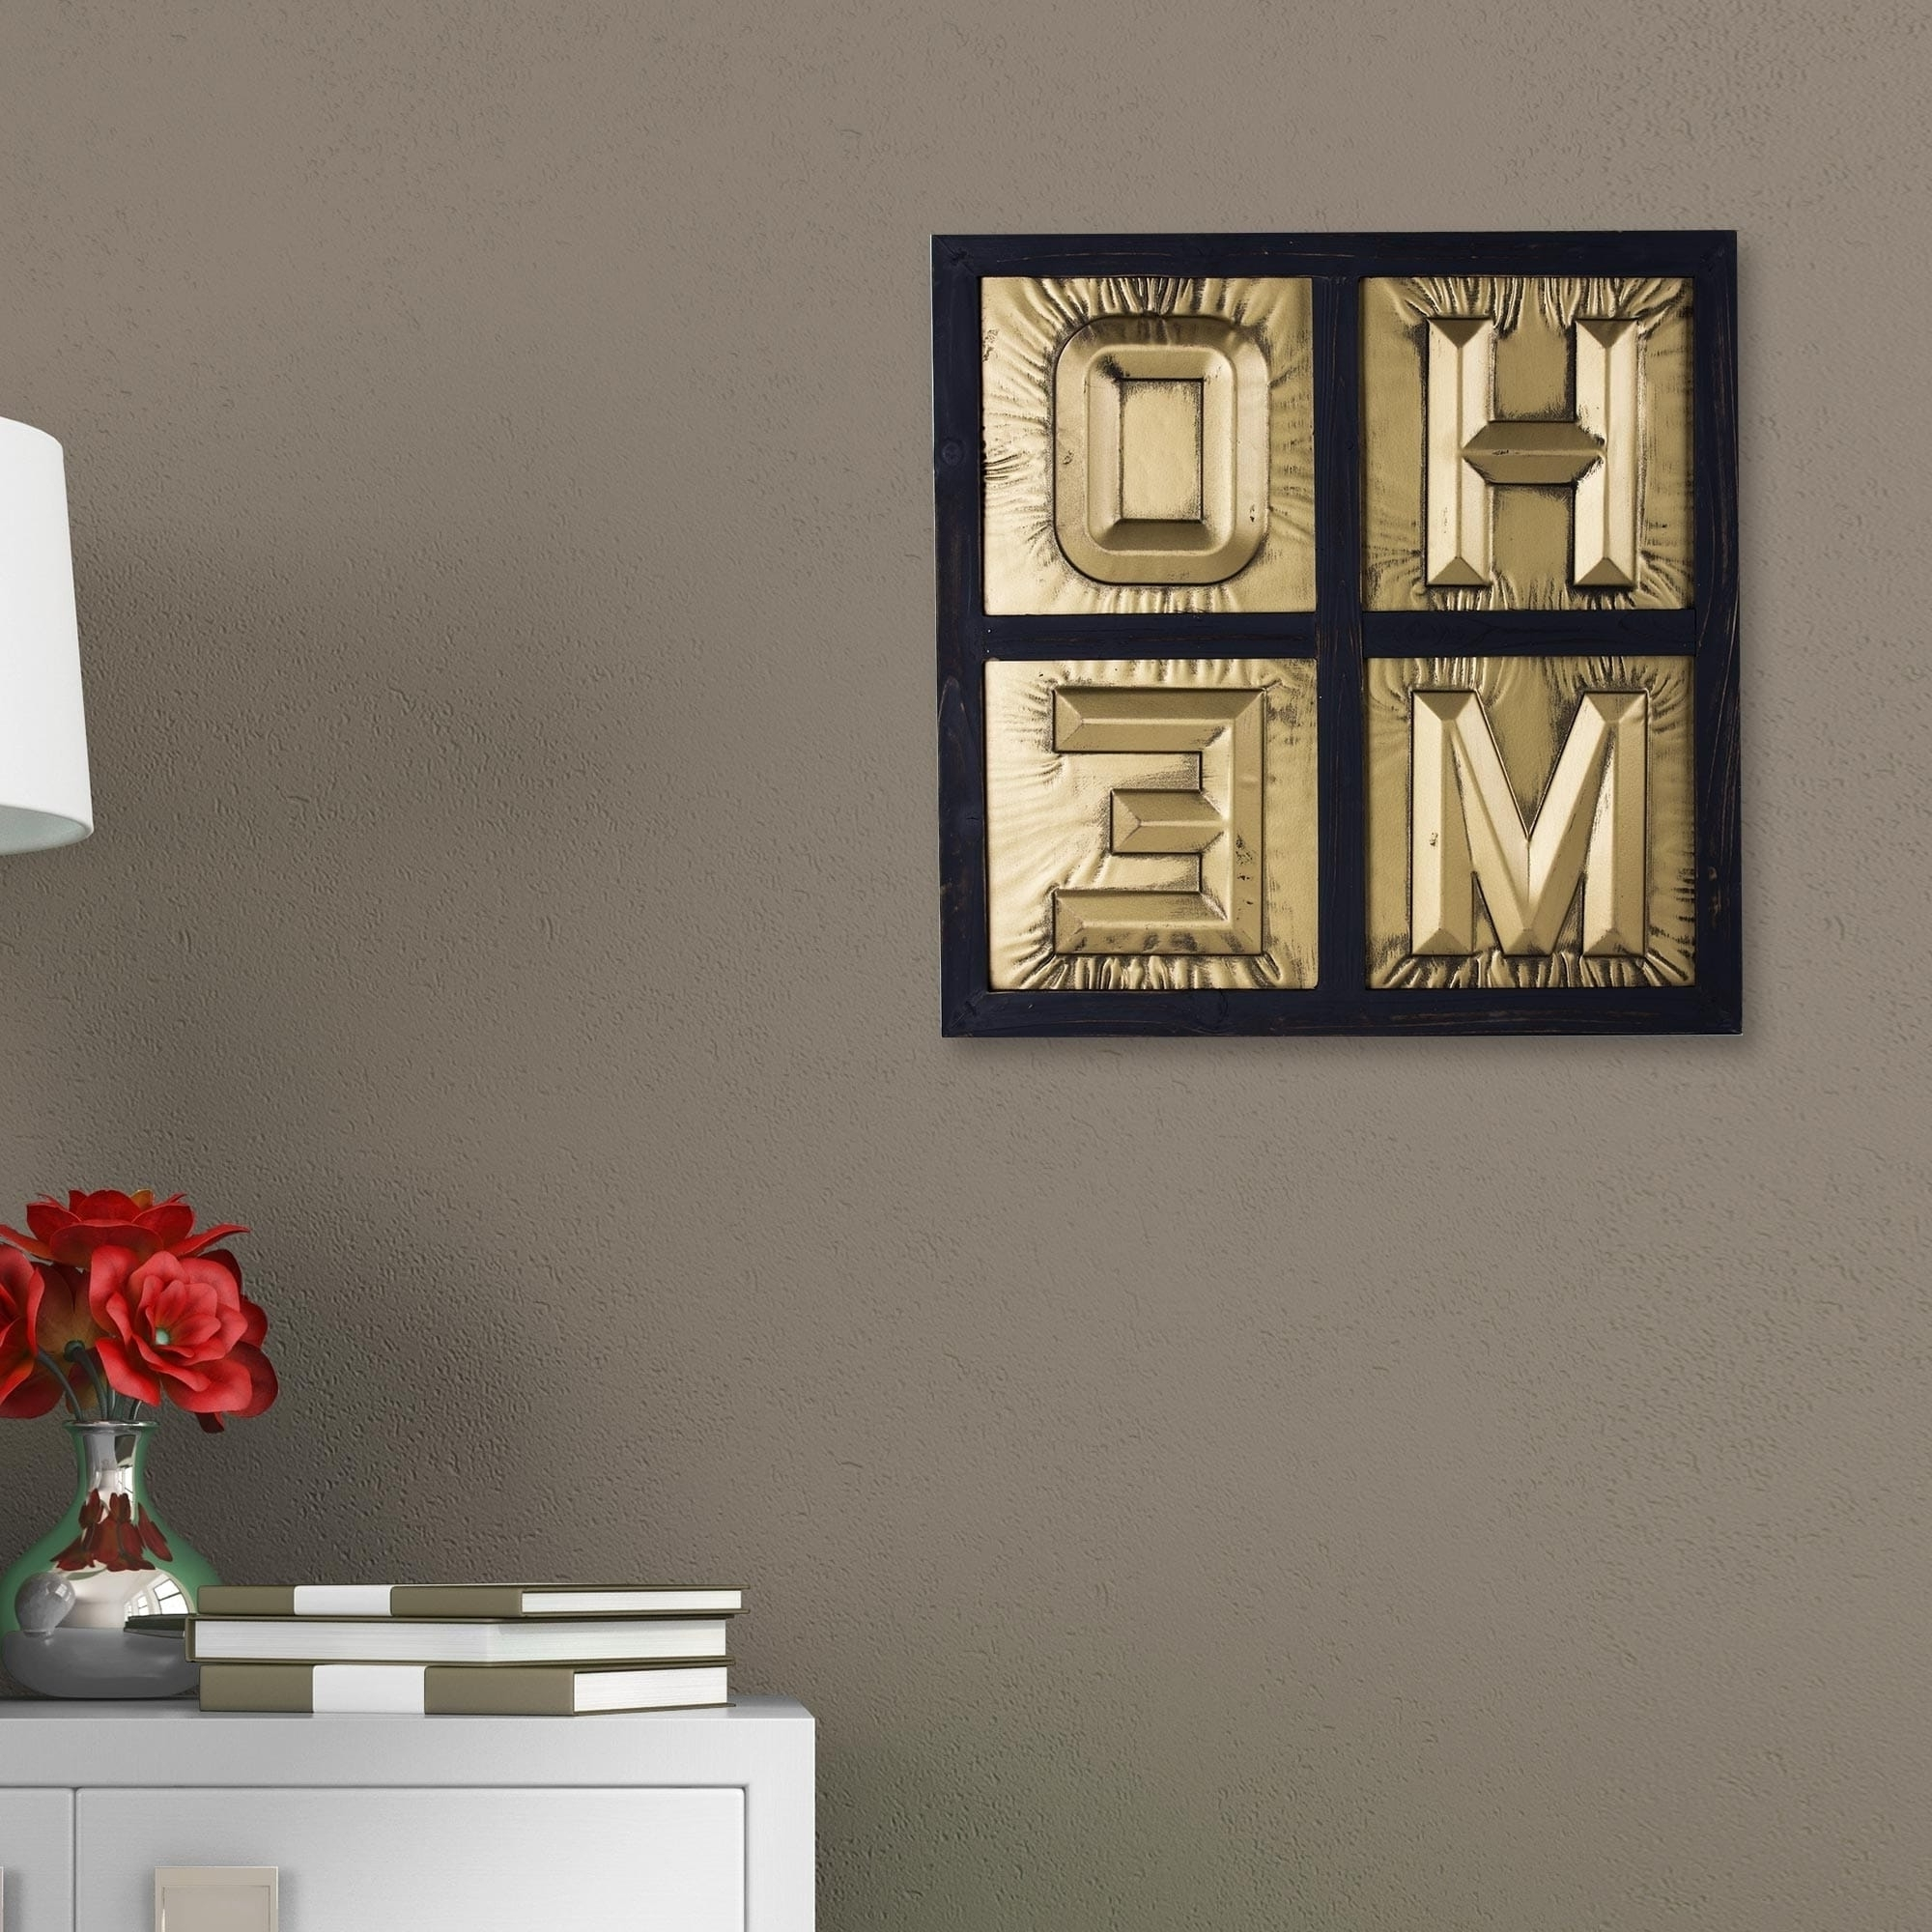 Most Current Framed 3D Wall Art For Home Sign 3D Gold Metal Block Letters Framed Wall Art Decor – Free (View 12 of 15)